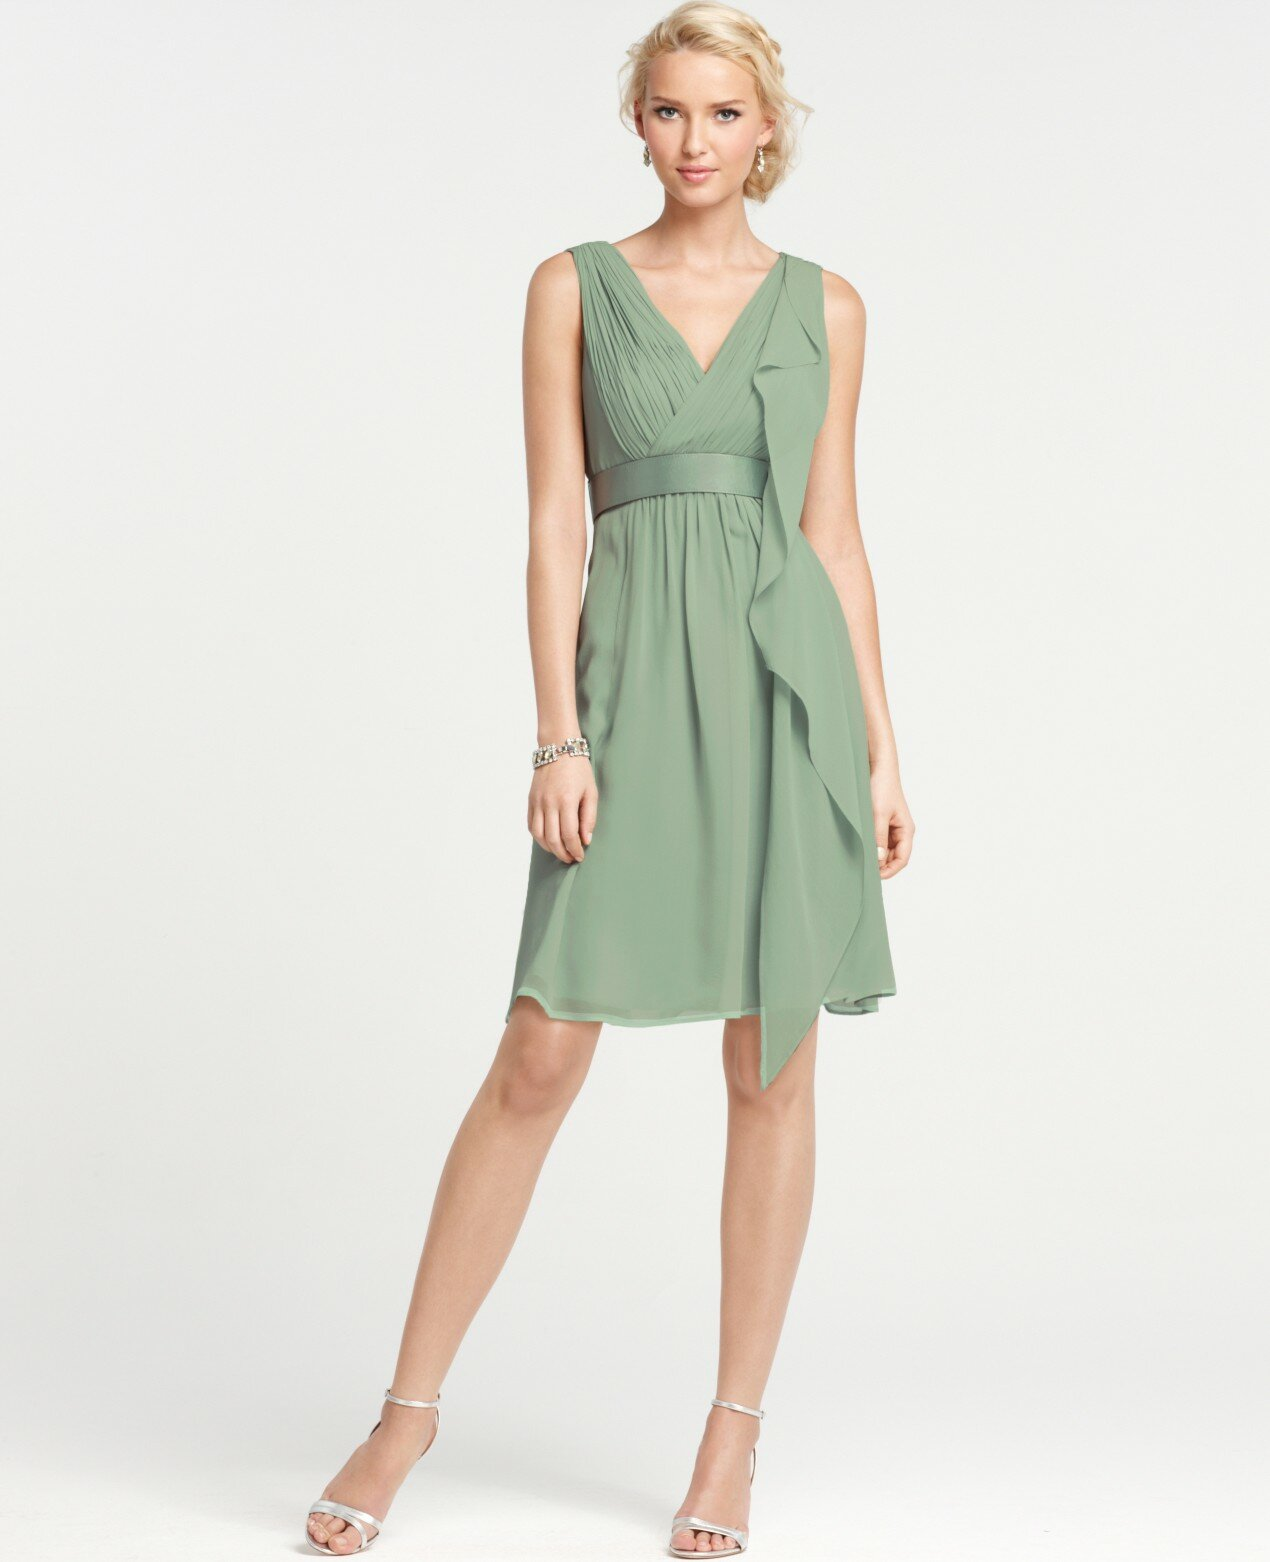 Ann Taylor wedding bridesmaid dresses: Pictures ideas, Guide to ...